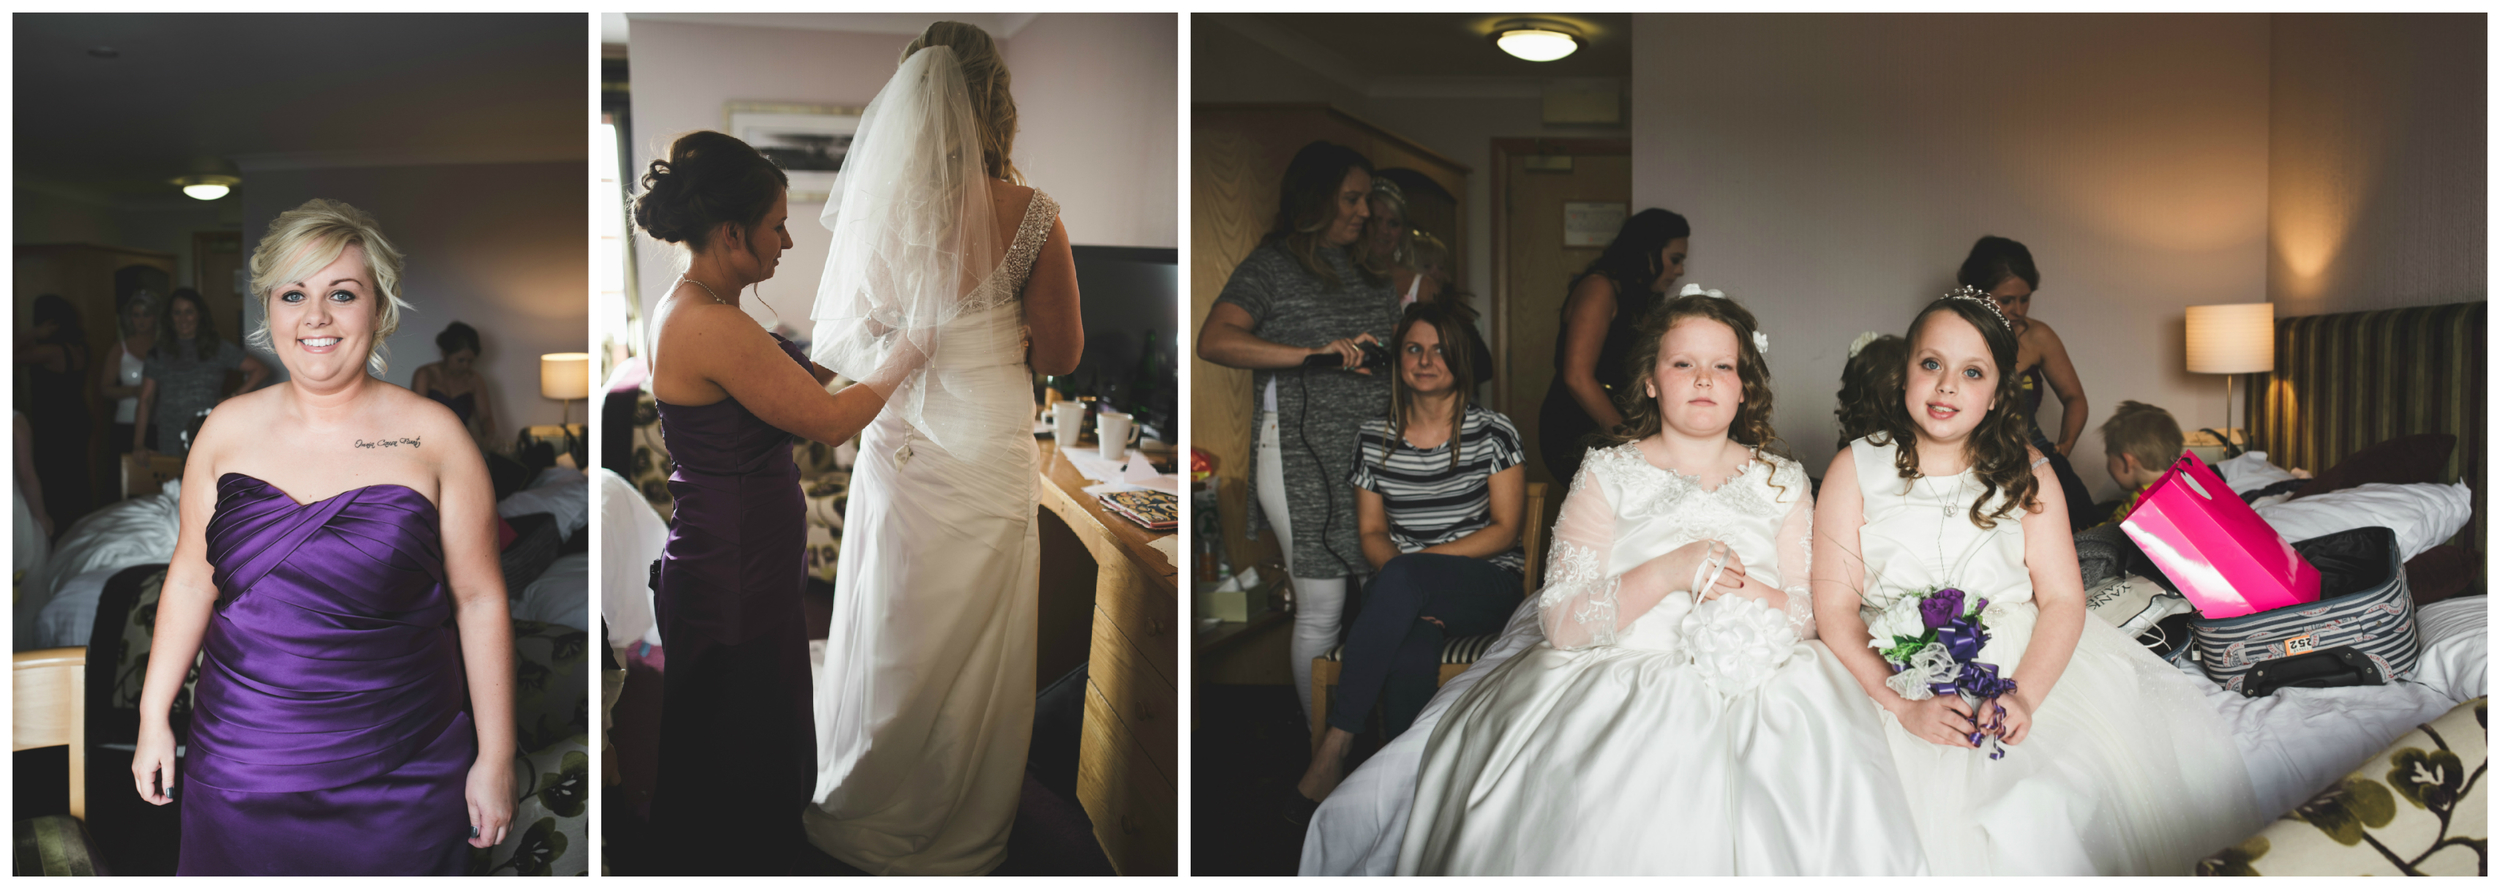 Northern_Ireland_Wedding_Photographer_ready